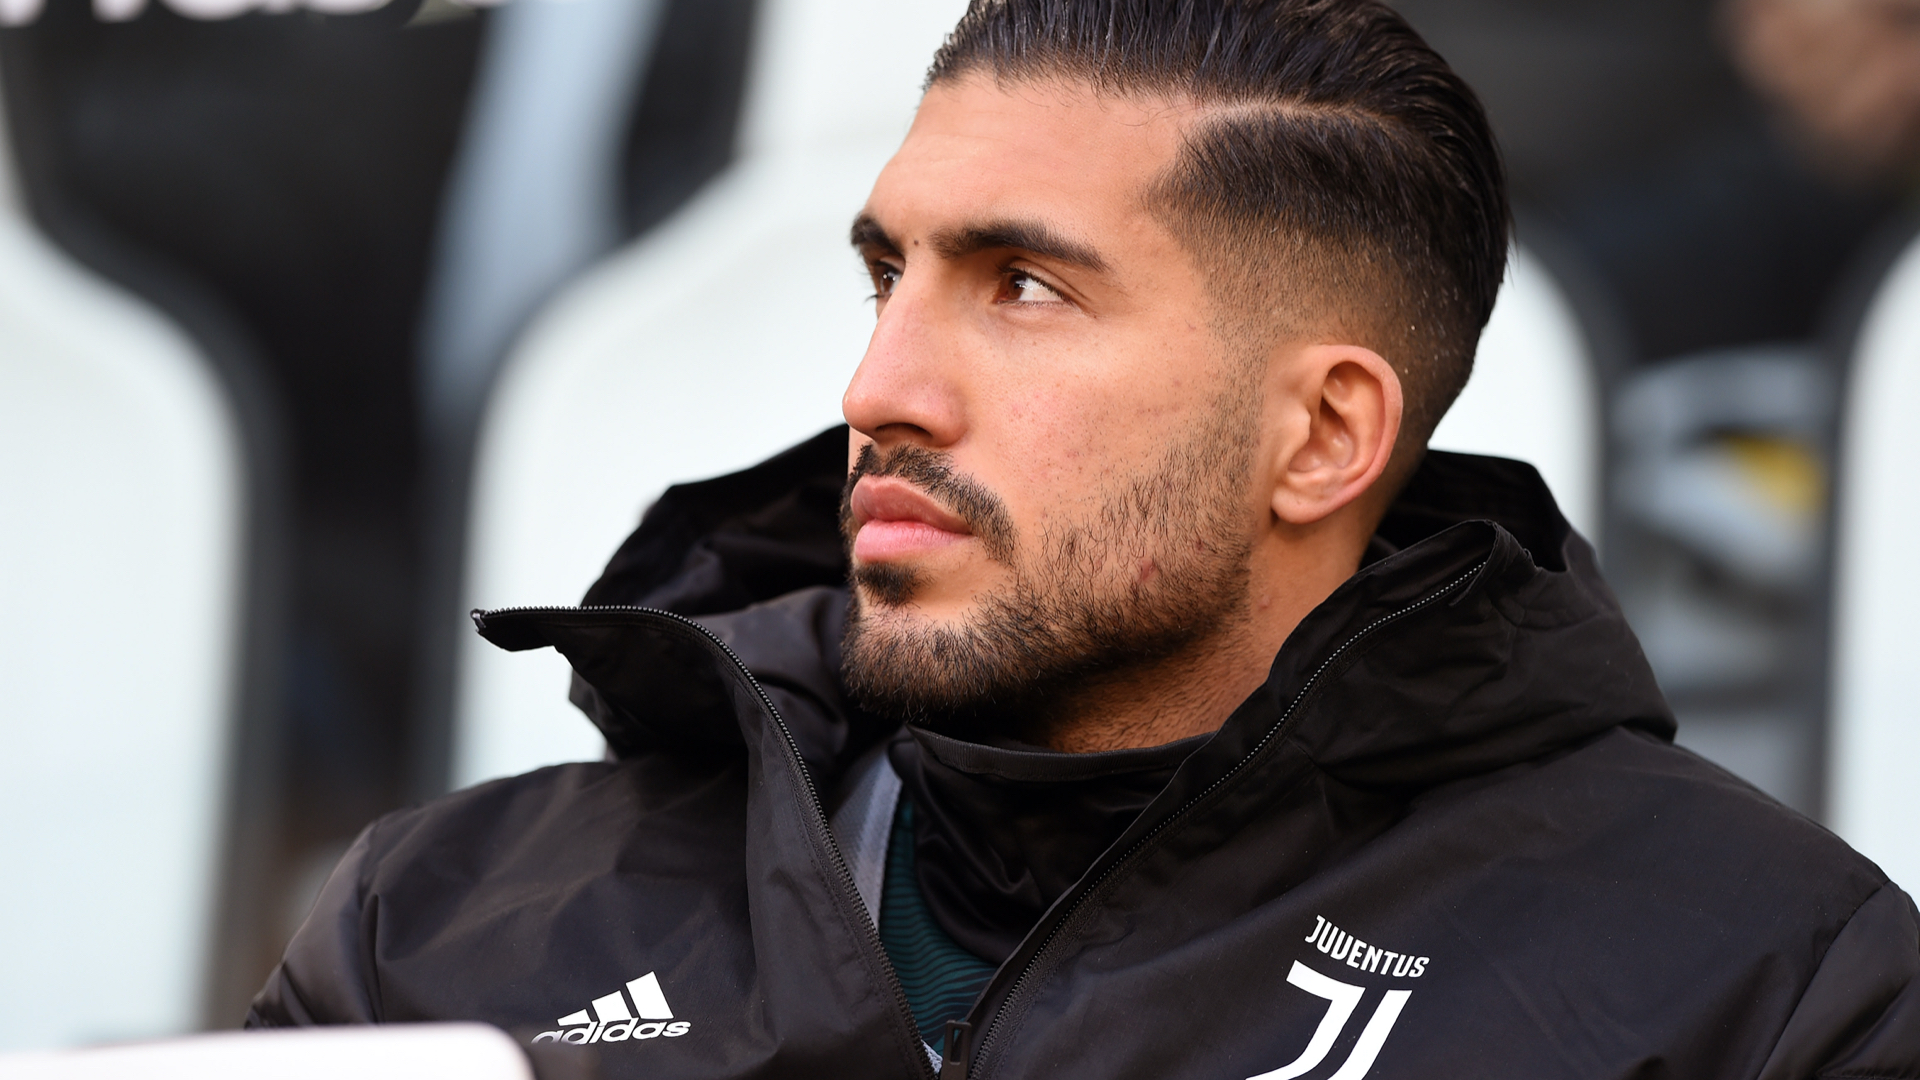 'Leader' Emre Can could play for any team in the Bundesliga - Bayern boss Flick